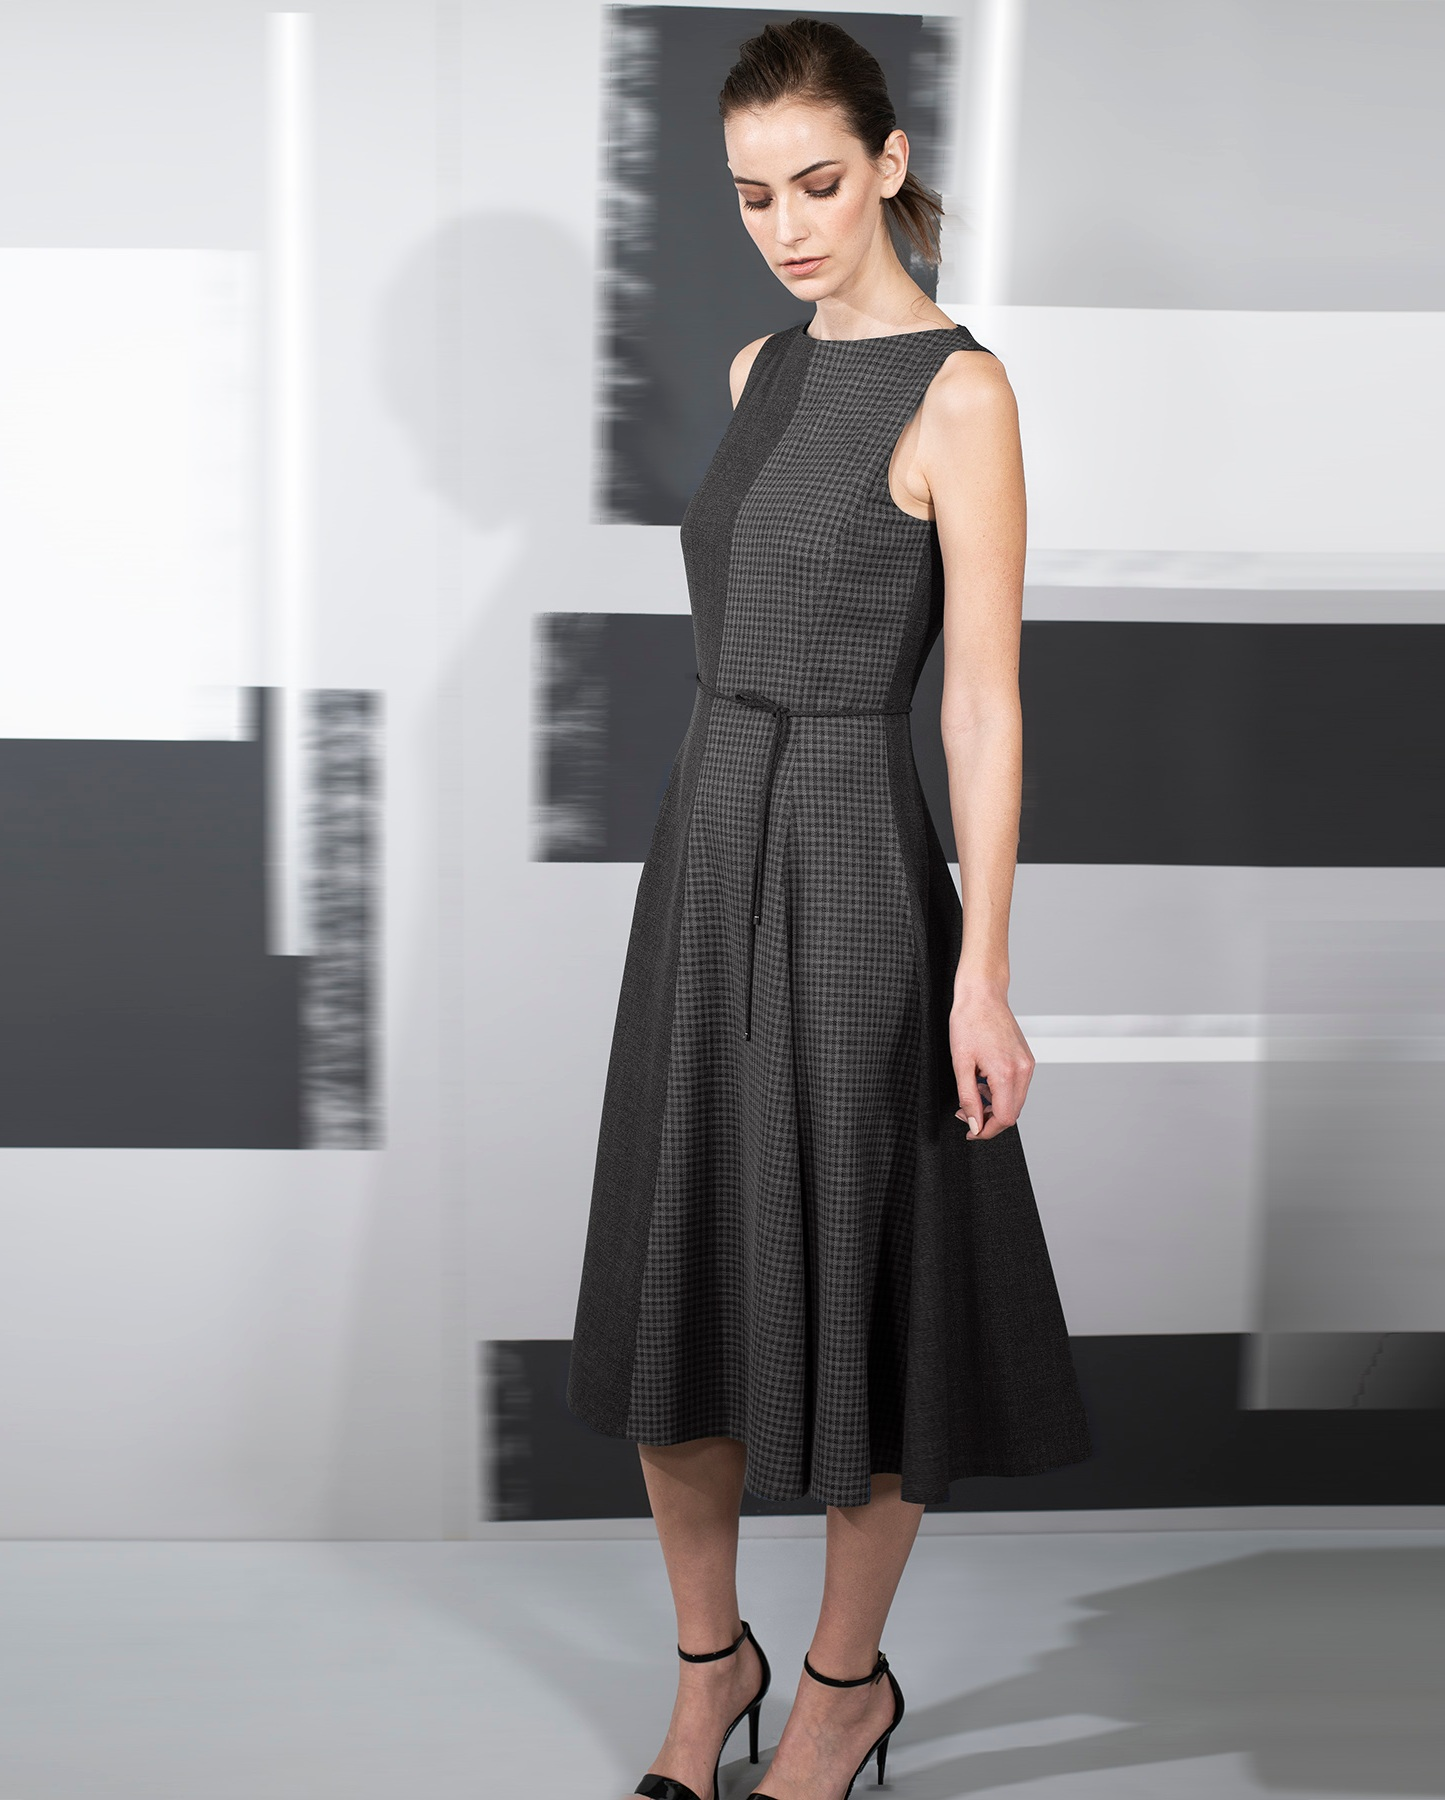 Dress+fluid+hemline+voile+fine+wool+with+micro+plaid+Black+oyster+-9257.jpg